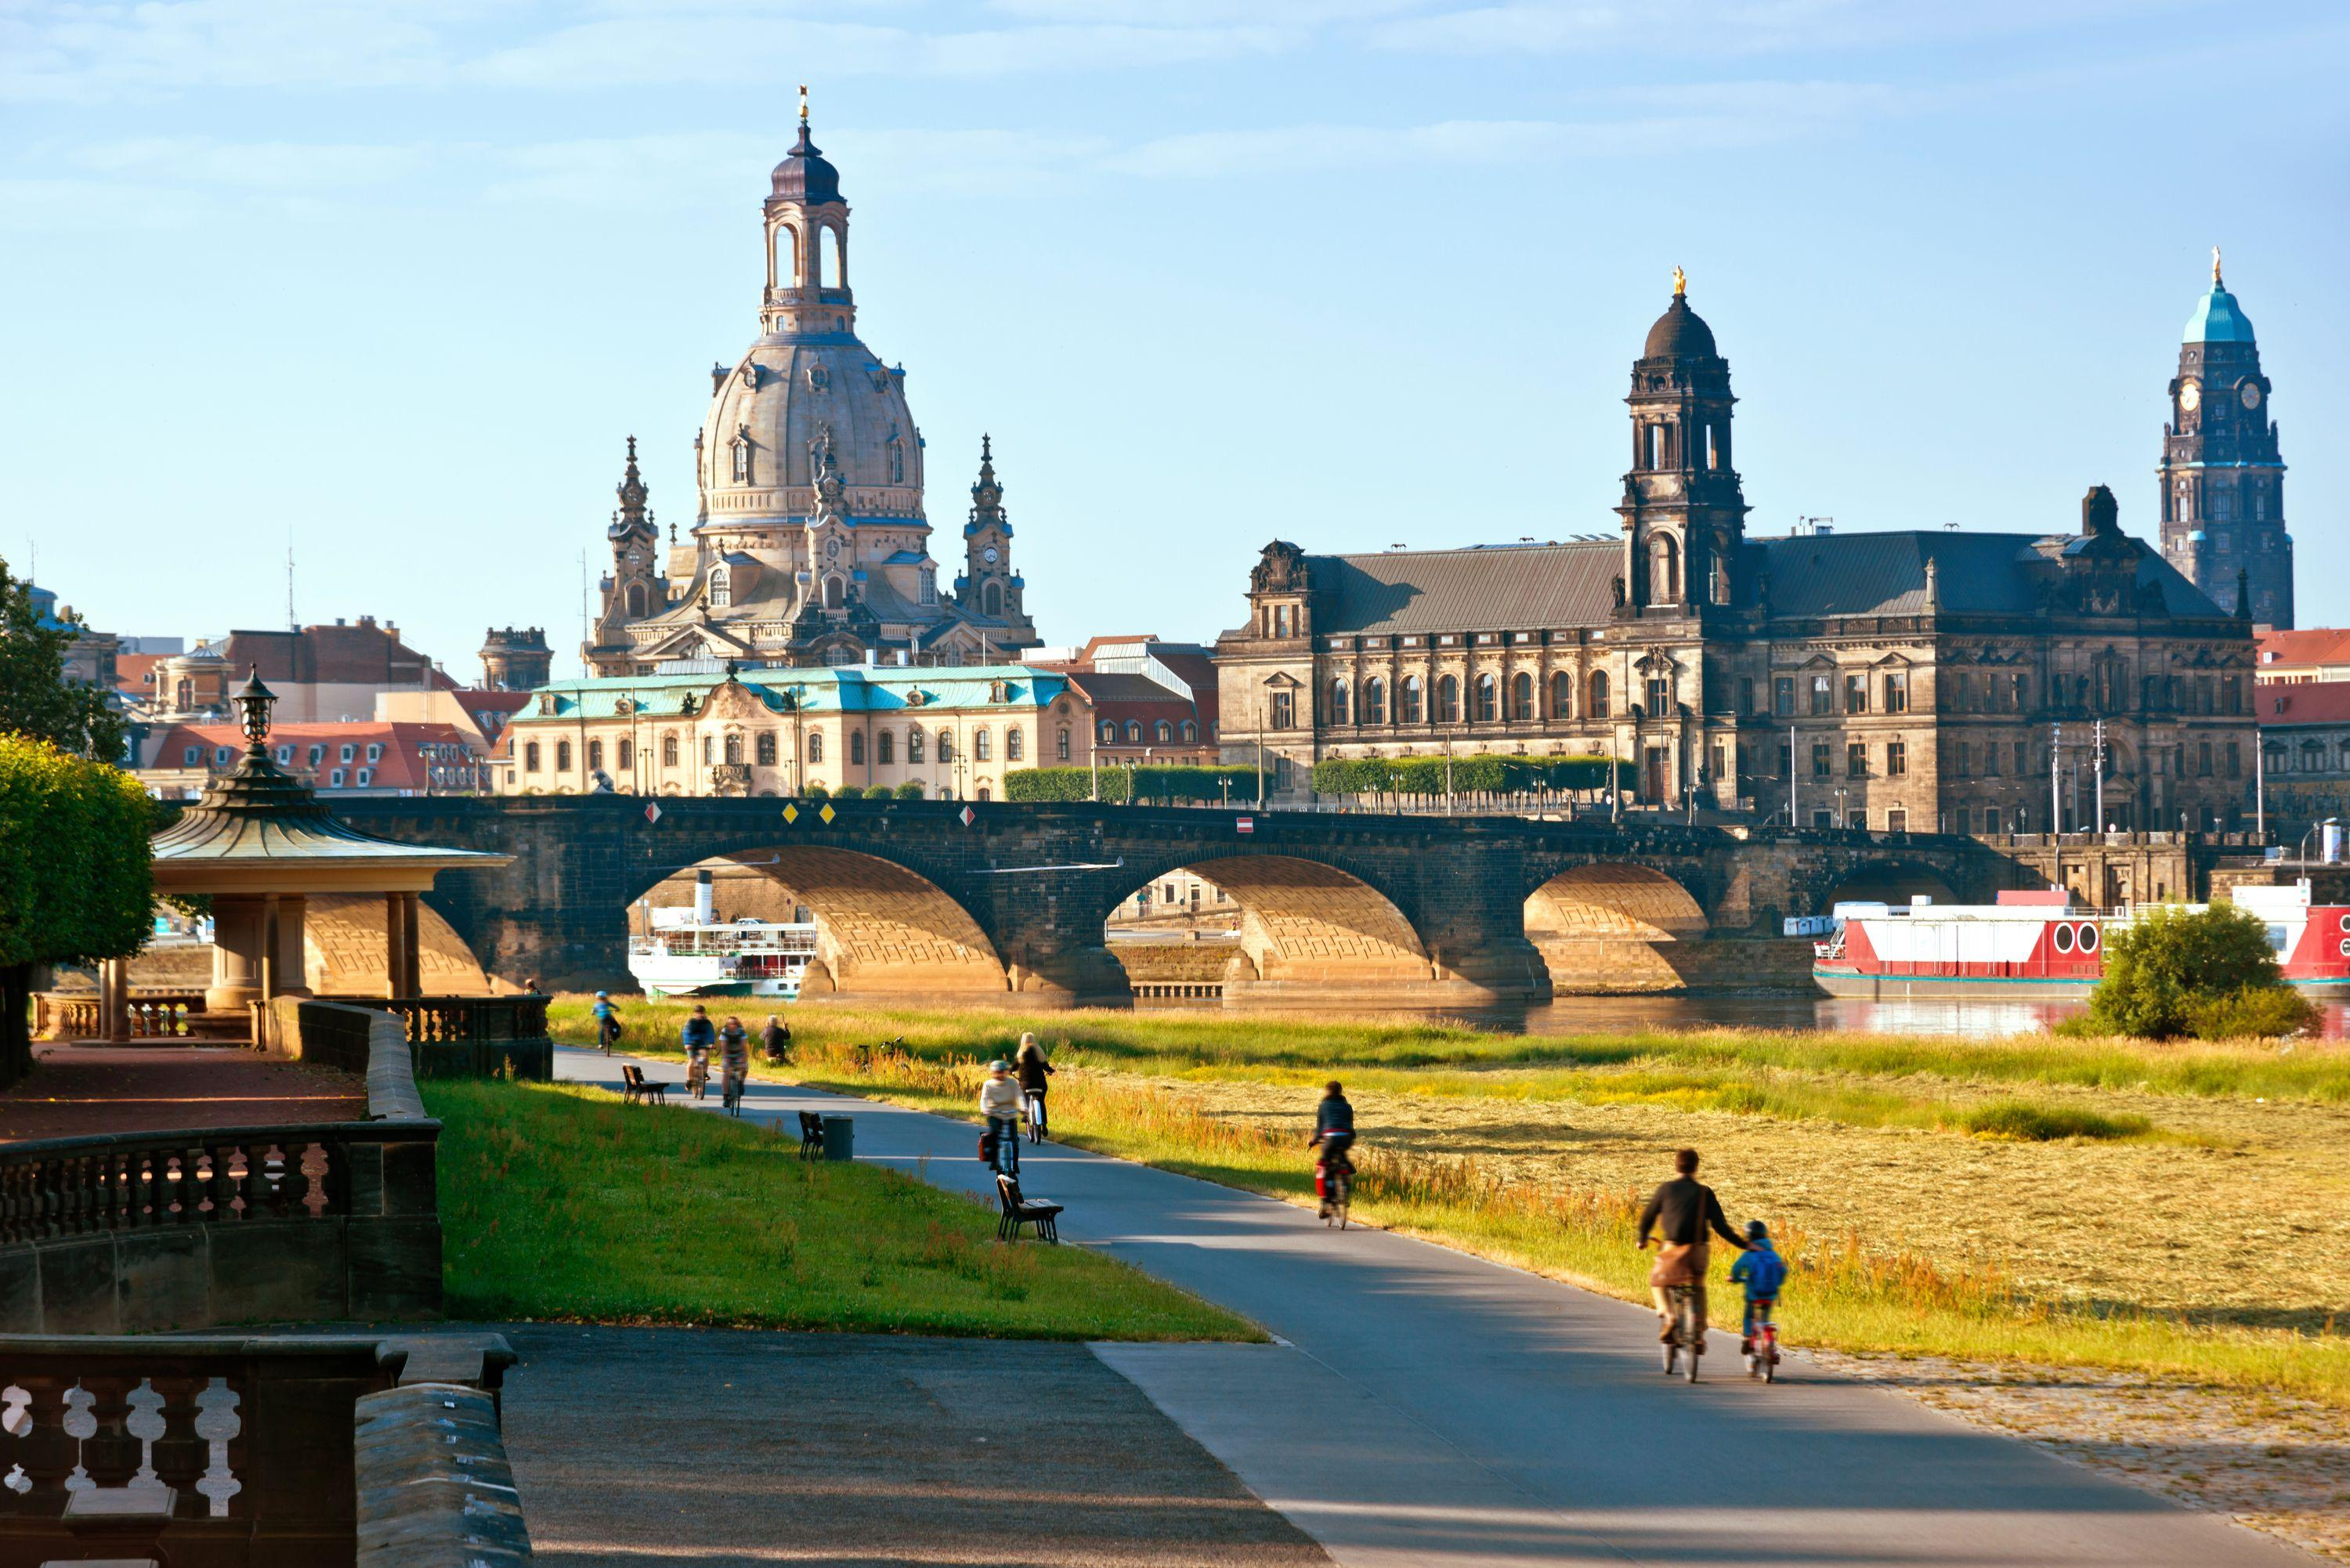 Qf Hotel Dresden Hotels In Dresden Find Cheap Dresden Hotels With Momondo Ireland